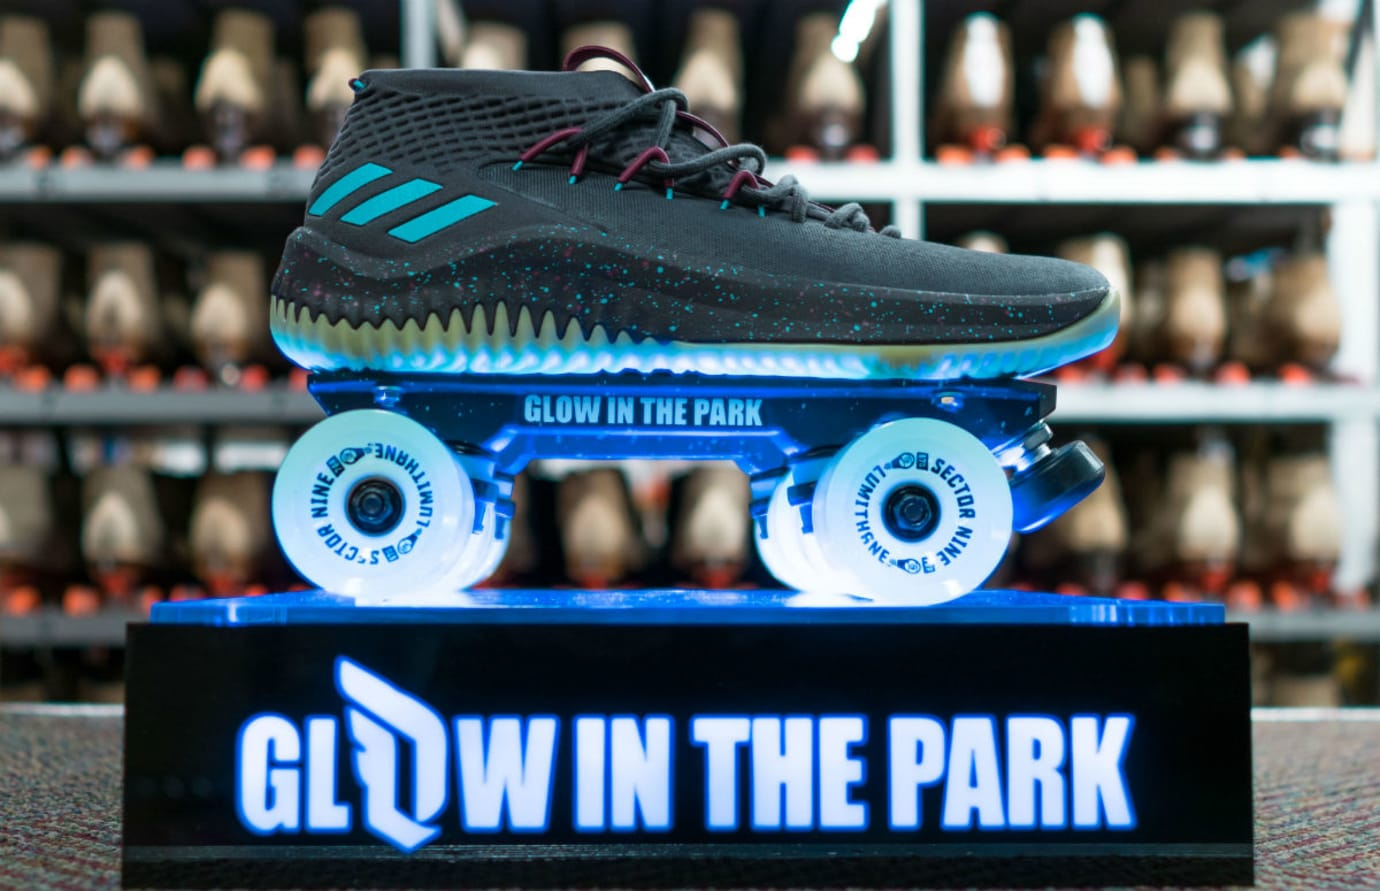 Adidas Dame 4 Glow in the Park Release Date CQ1254 Skates Profile